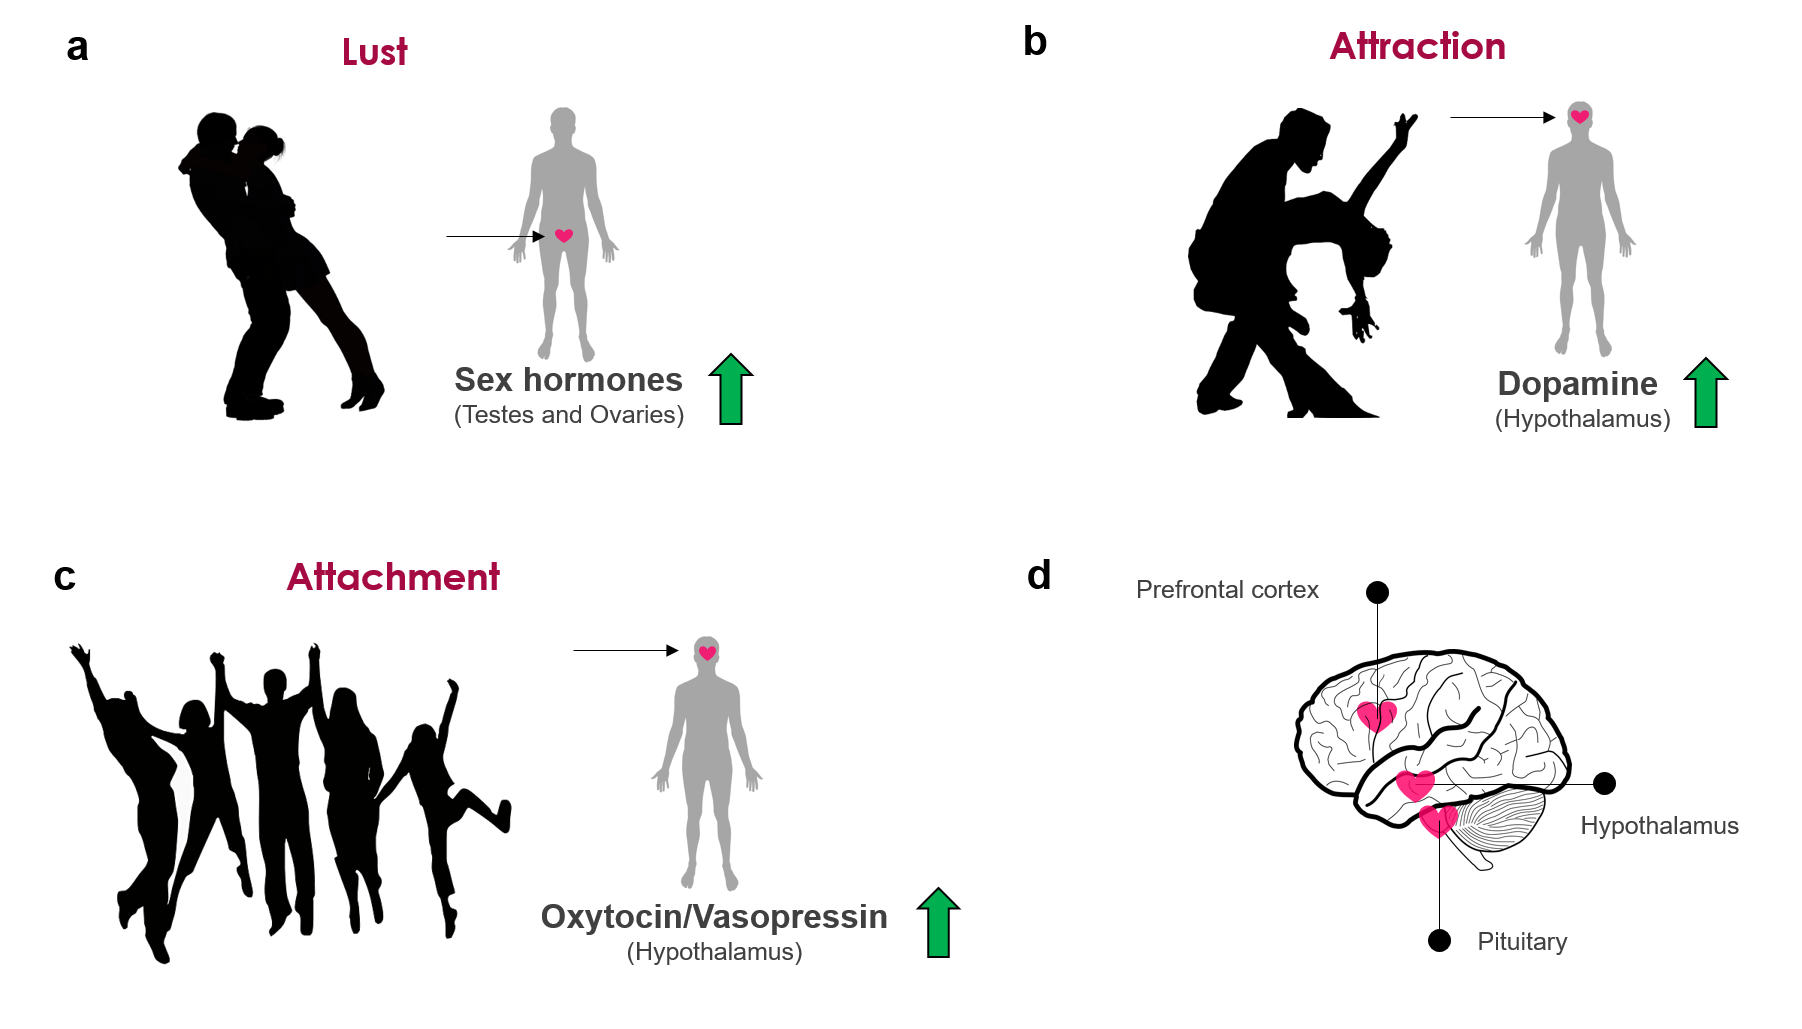 Sex hormones attachment